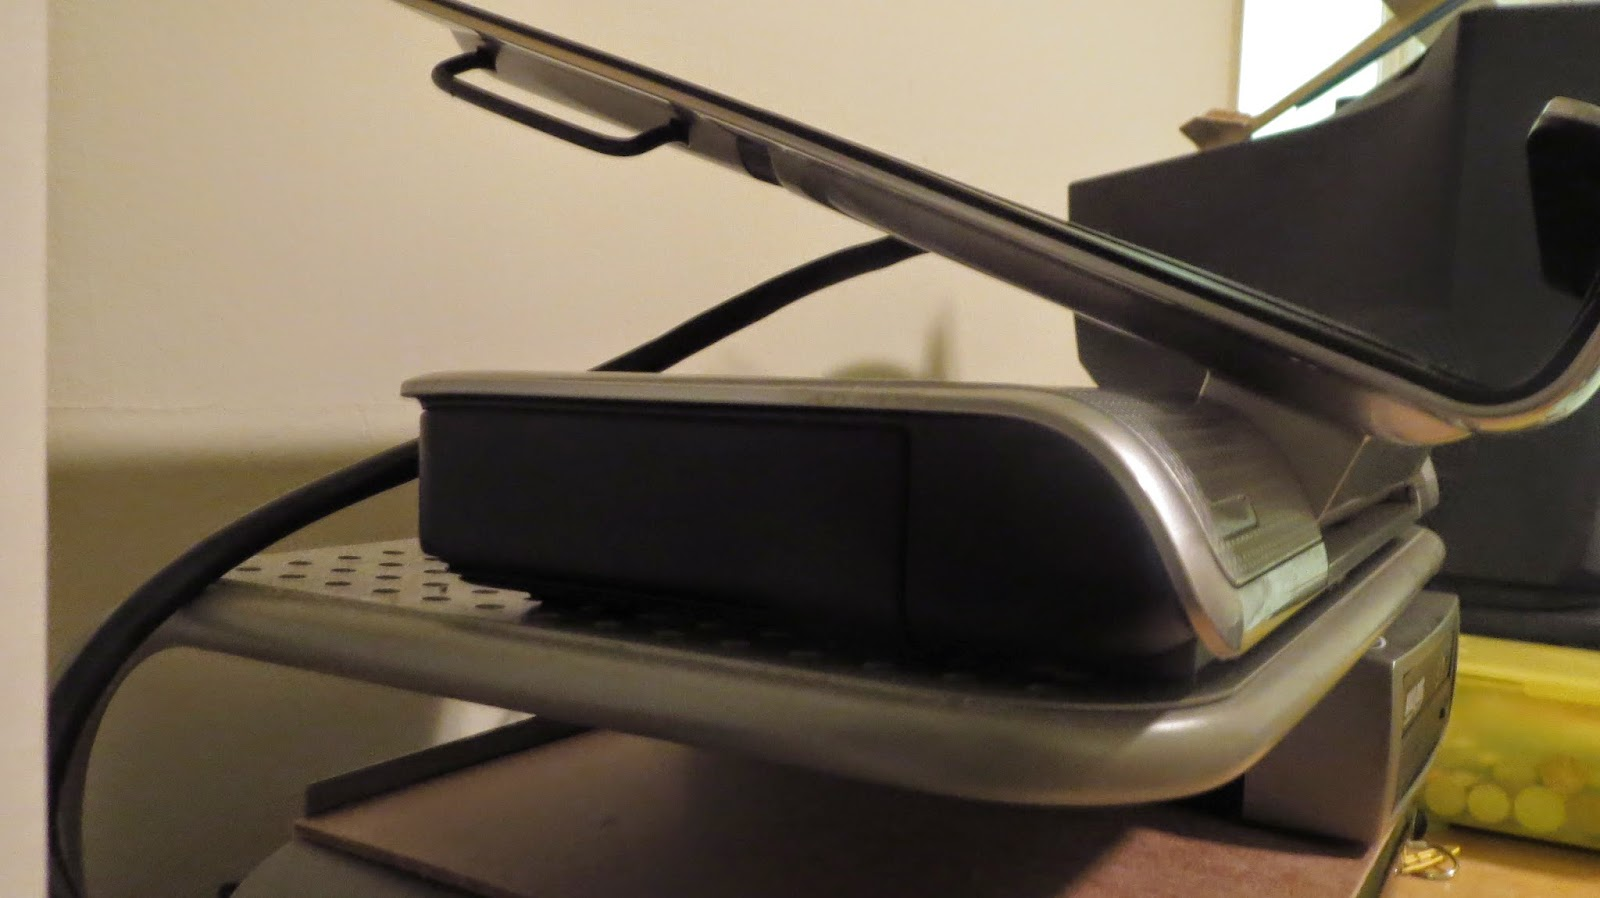 Hp notebook quickdock price - The Hp Xb3000 Notebook Expansion Base Has A Slot For A 3 5 Inch Hdd On The Left Side But You Need A Special Caddy For The Hdd The Hp Xb3000 Hard Drive